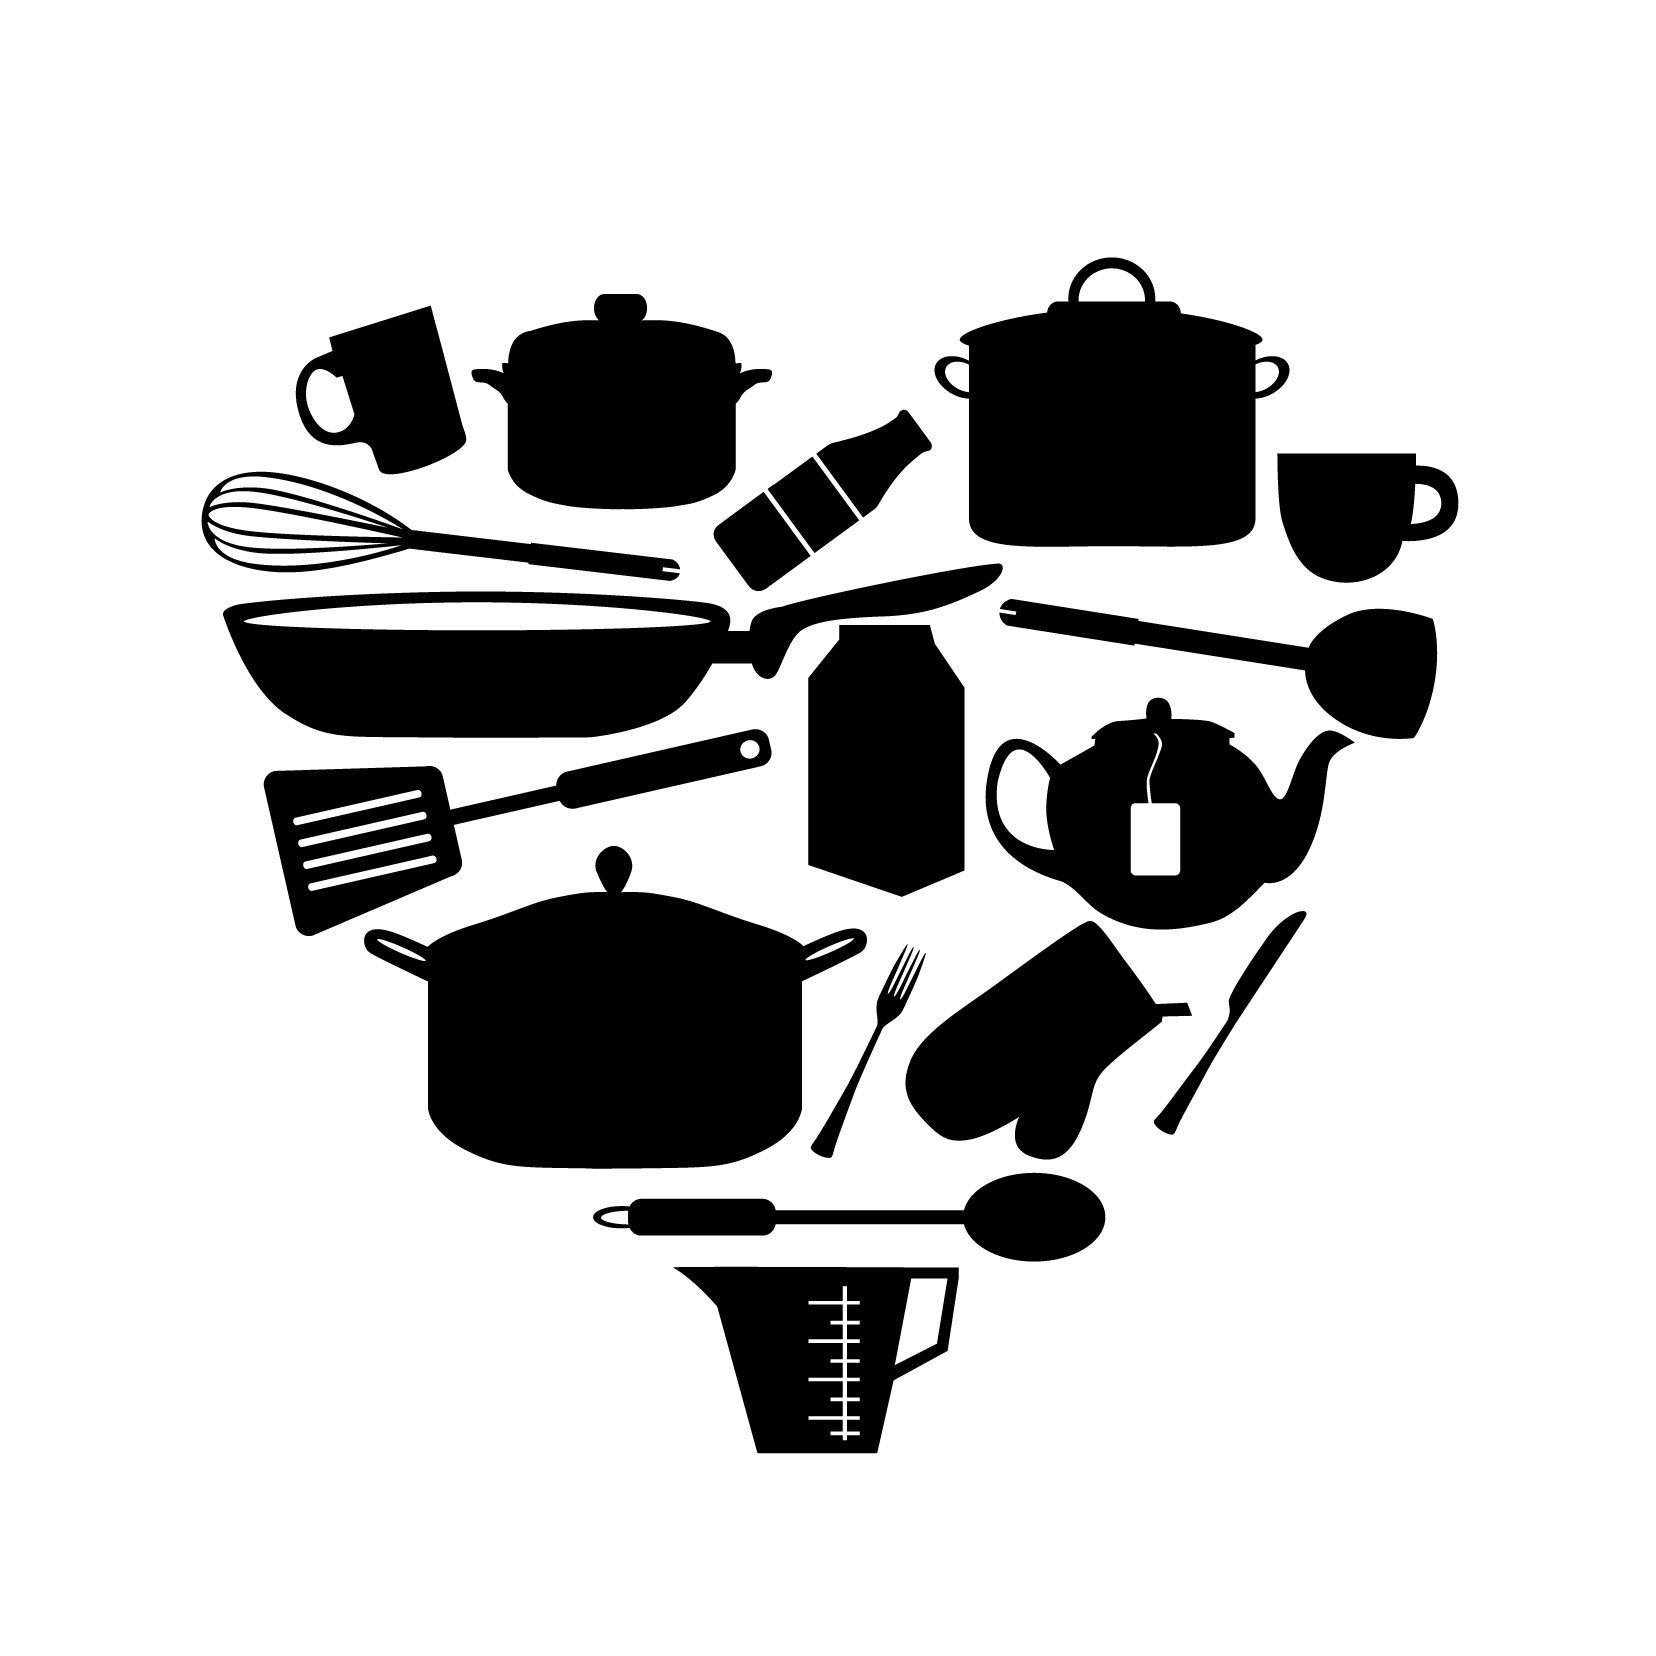 Kitchen Items Heart - Vinyl Wall Art Decal for Homes, Offices, Kids Rooms, Nurseries, Schools, High Schools, Colleges, Universities, Interior Designers, Architects, Remodelers